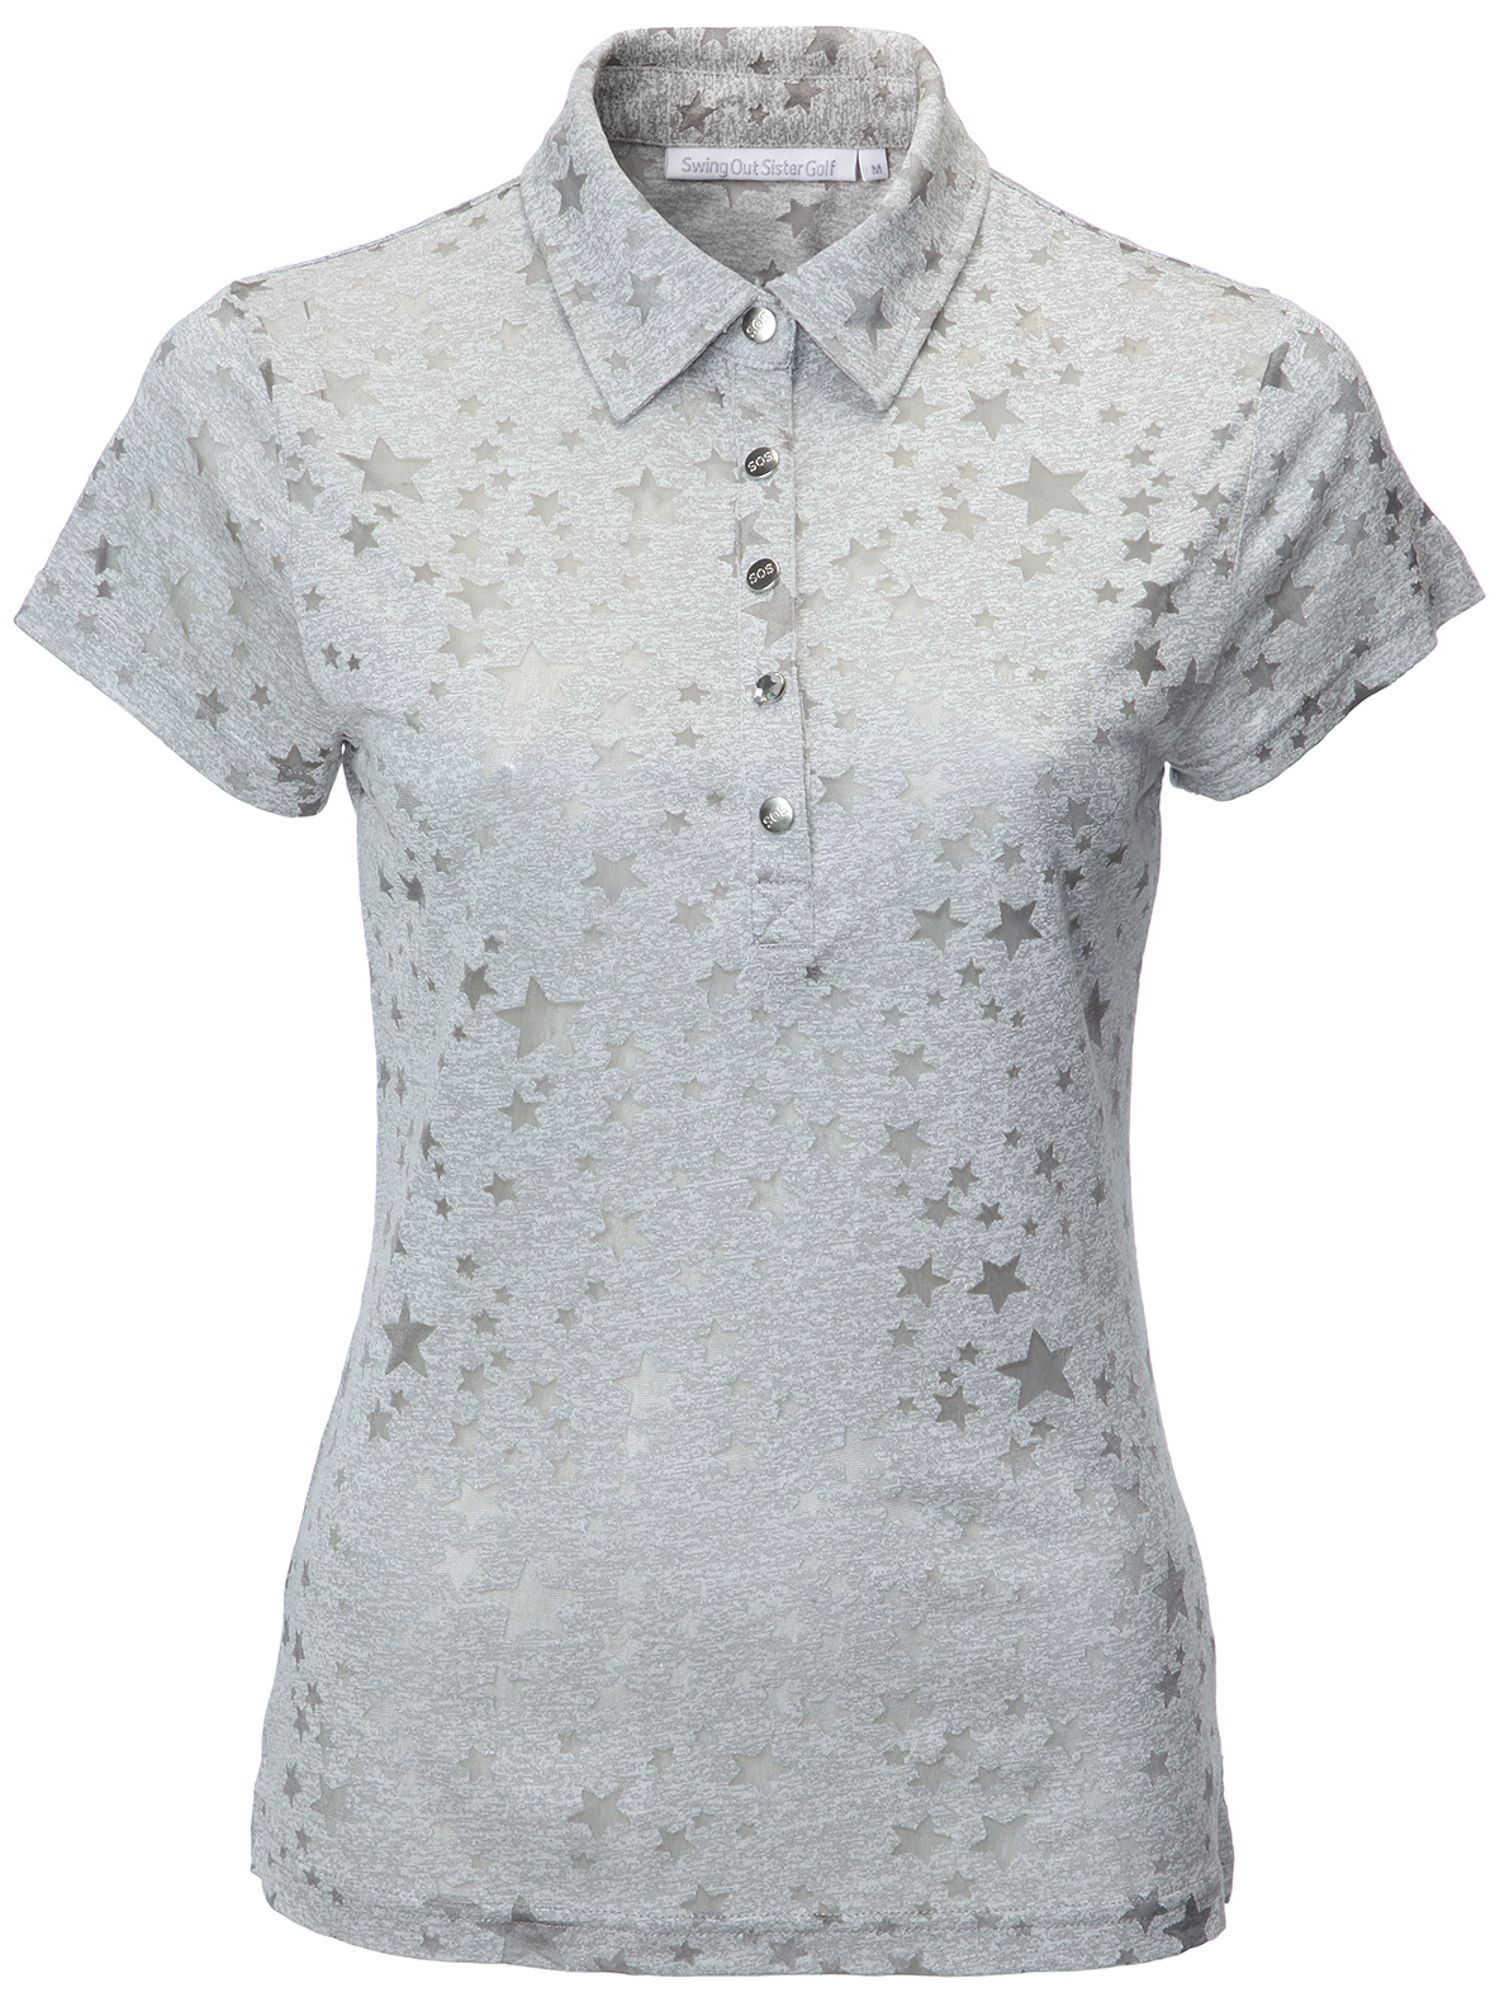 Swing Out Sister Christina Star Print Cap Sleeve Shirt, Grey